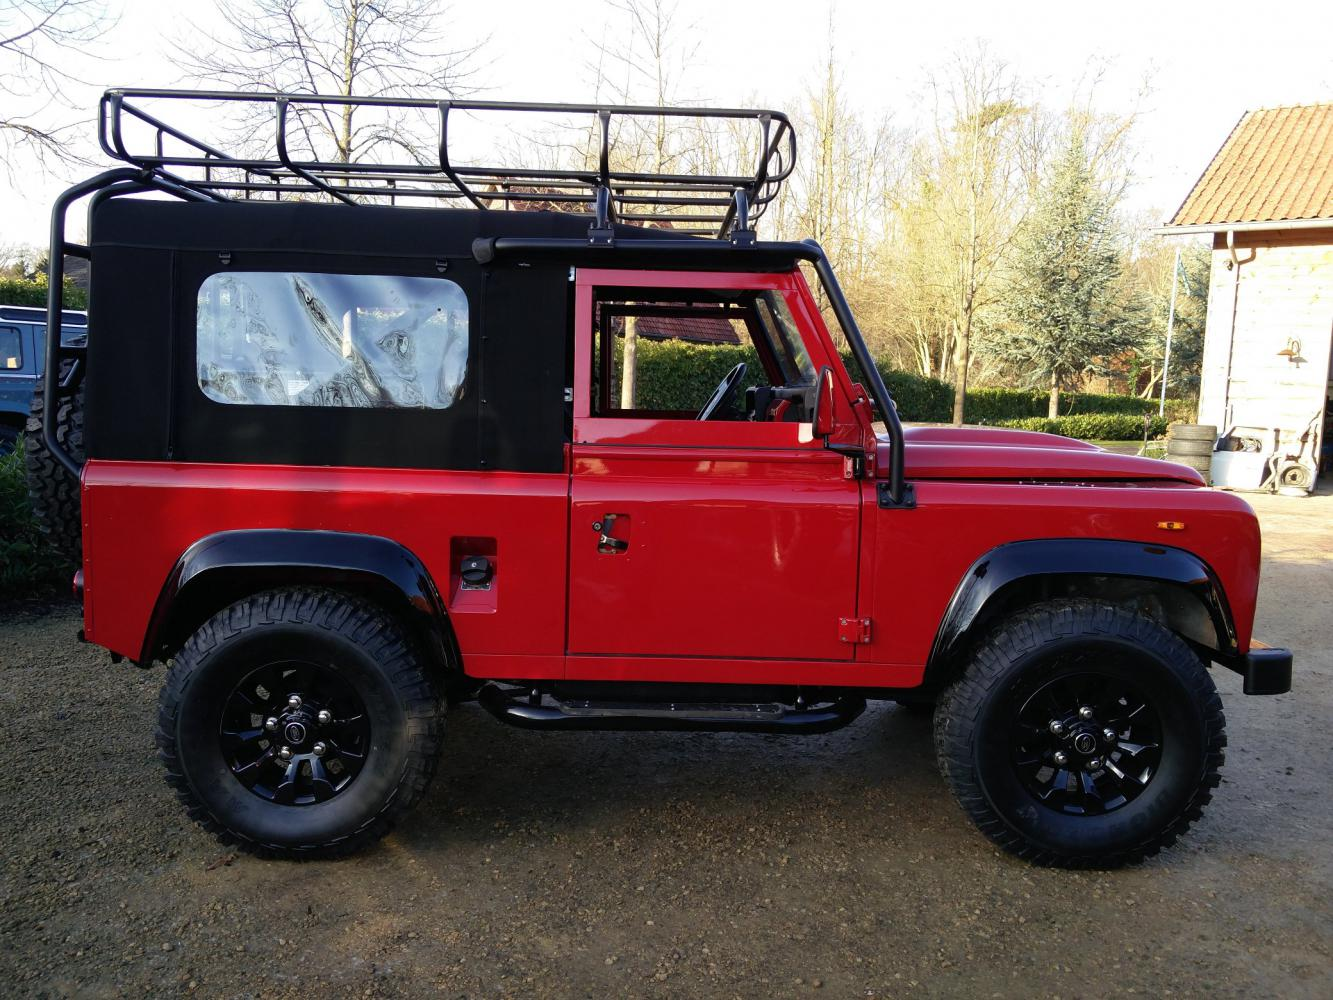 Click image for larger version  Name:1992 LR LHD Defender 90 Red 200 Tdi A ready right side.jpg Views:84 Size:219.4 KB ID:336785